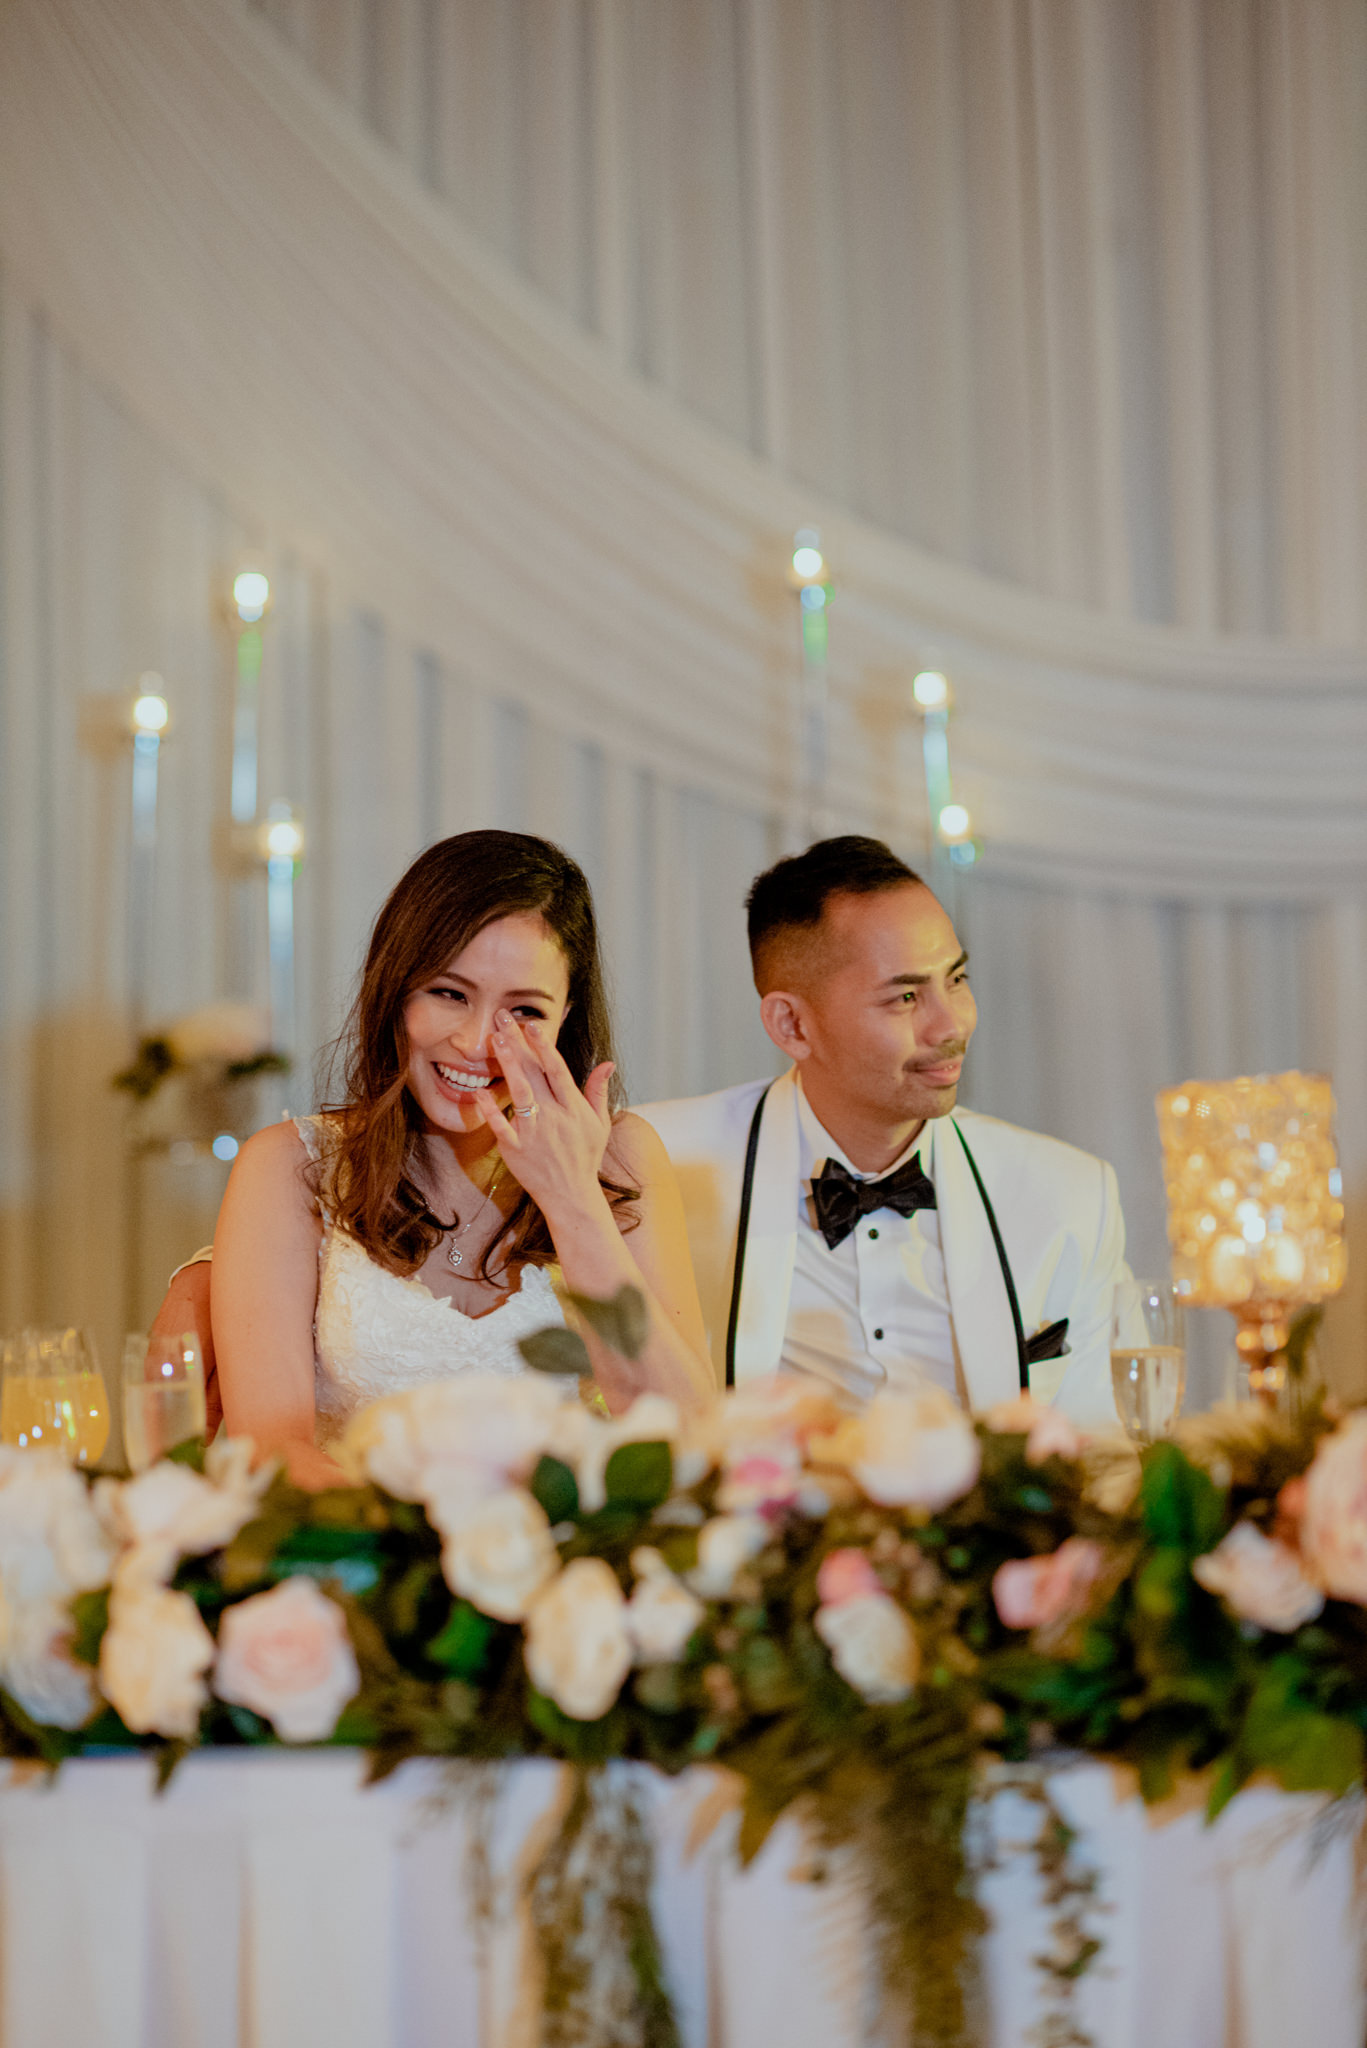 An Asian bride sits at a table and wipes away a tear with her husband wrapping her arm around her shoulder